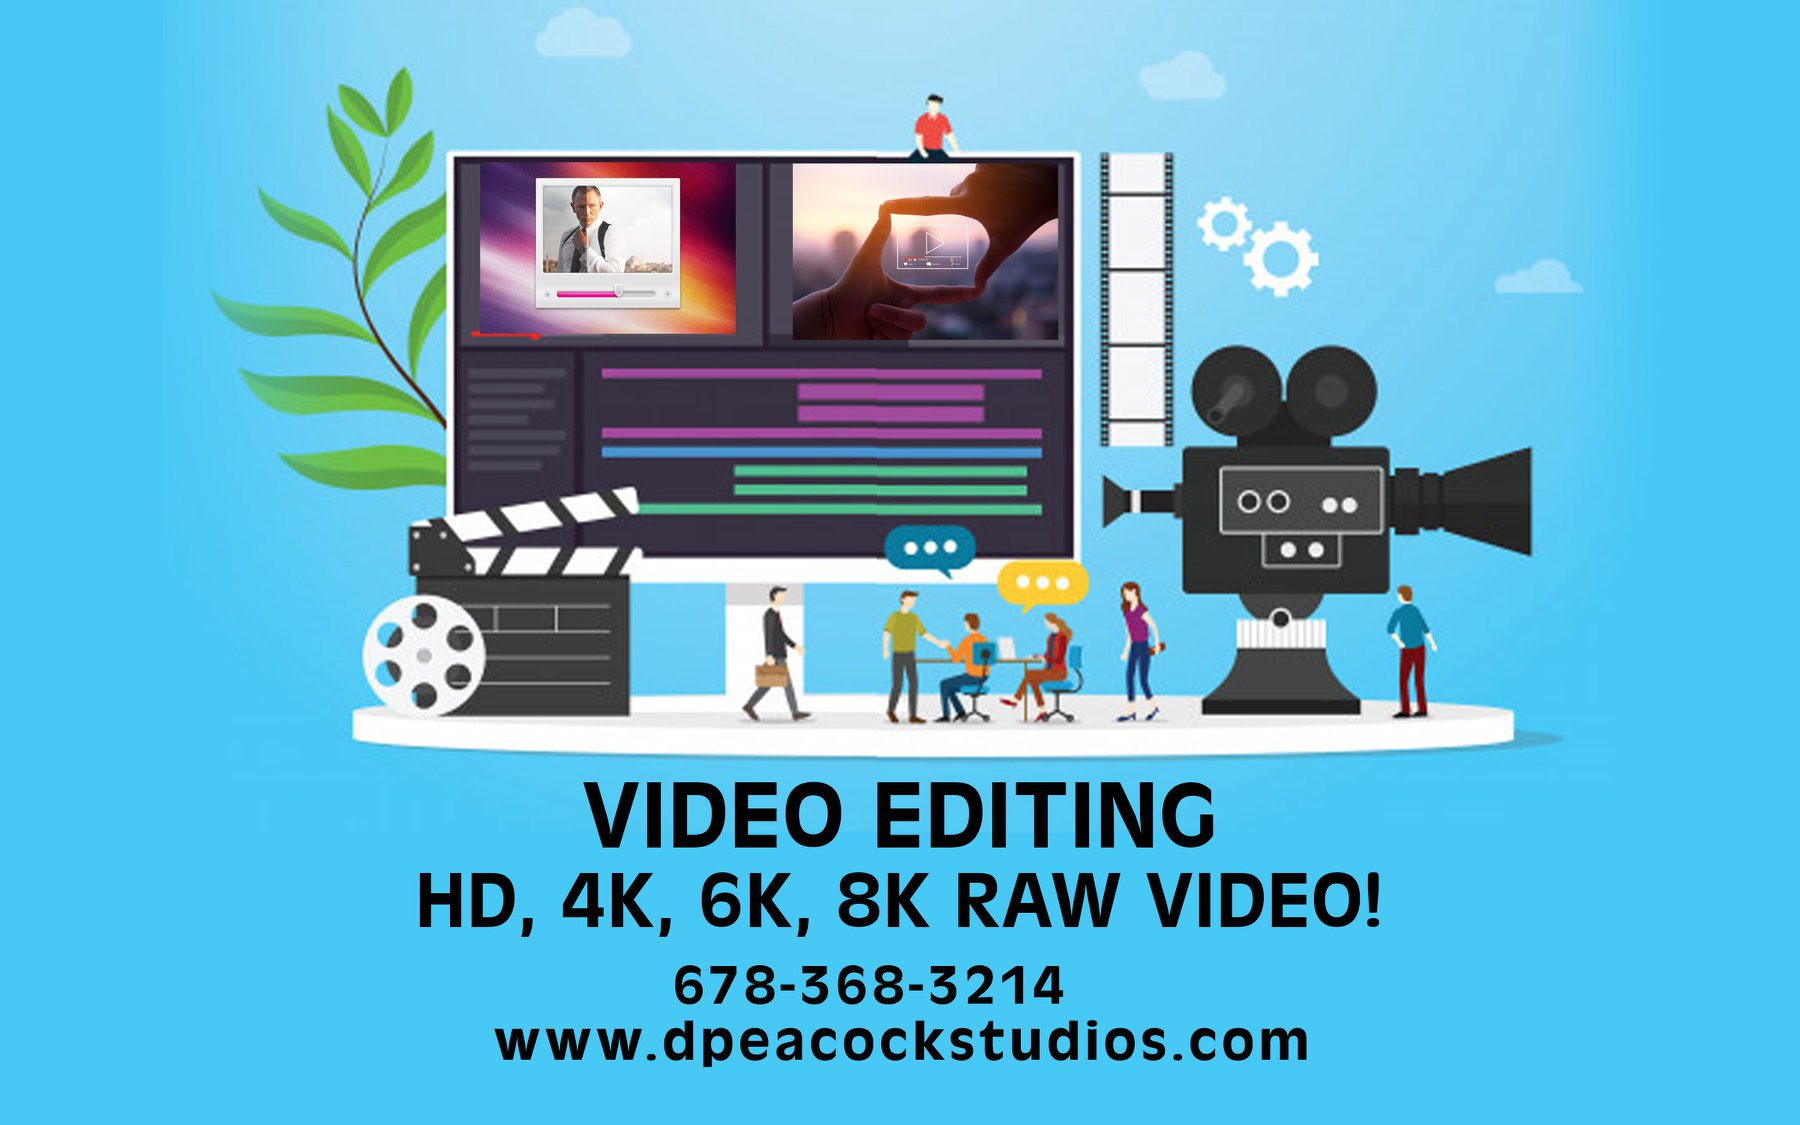 Atlanta Gwinnett Video Editing Services